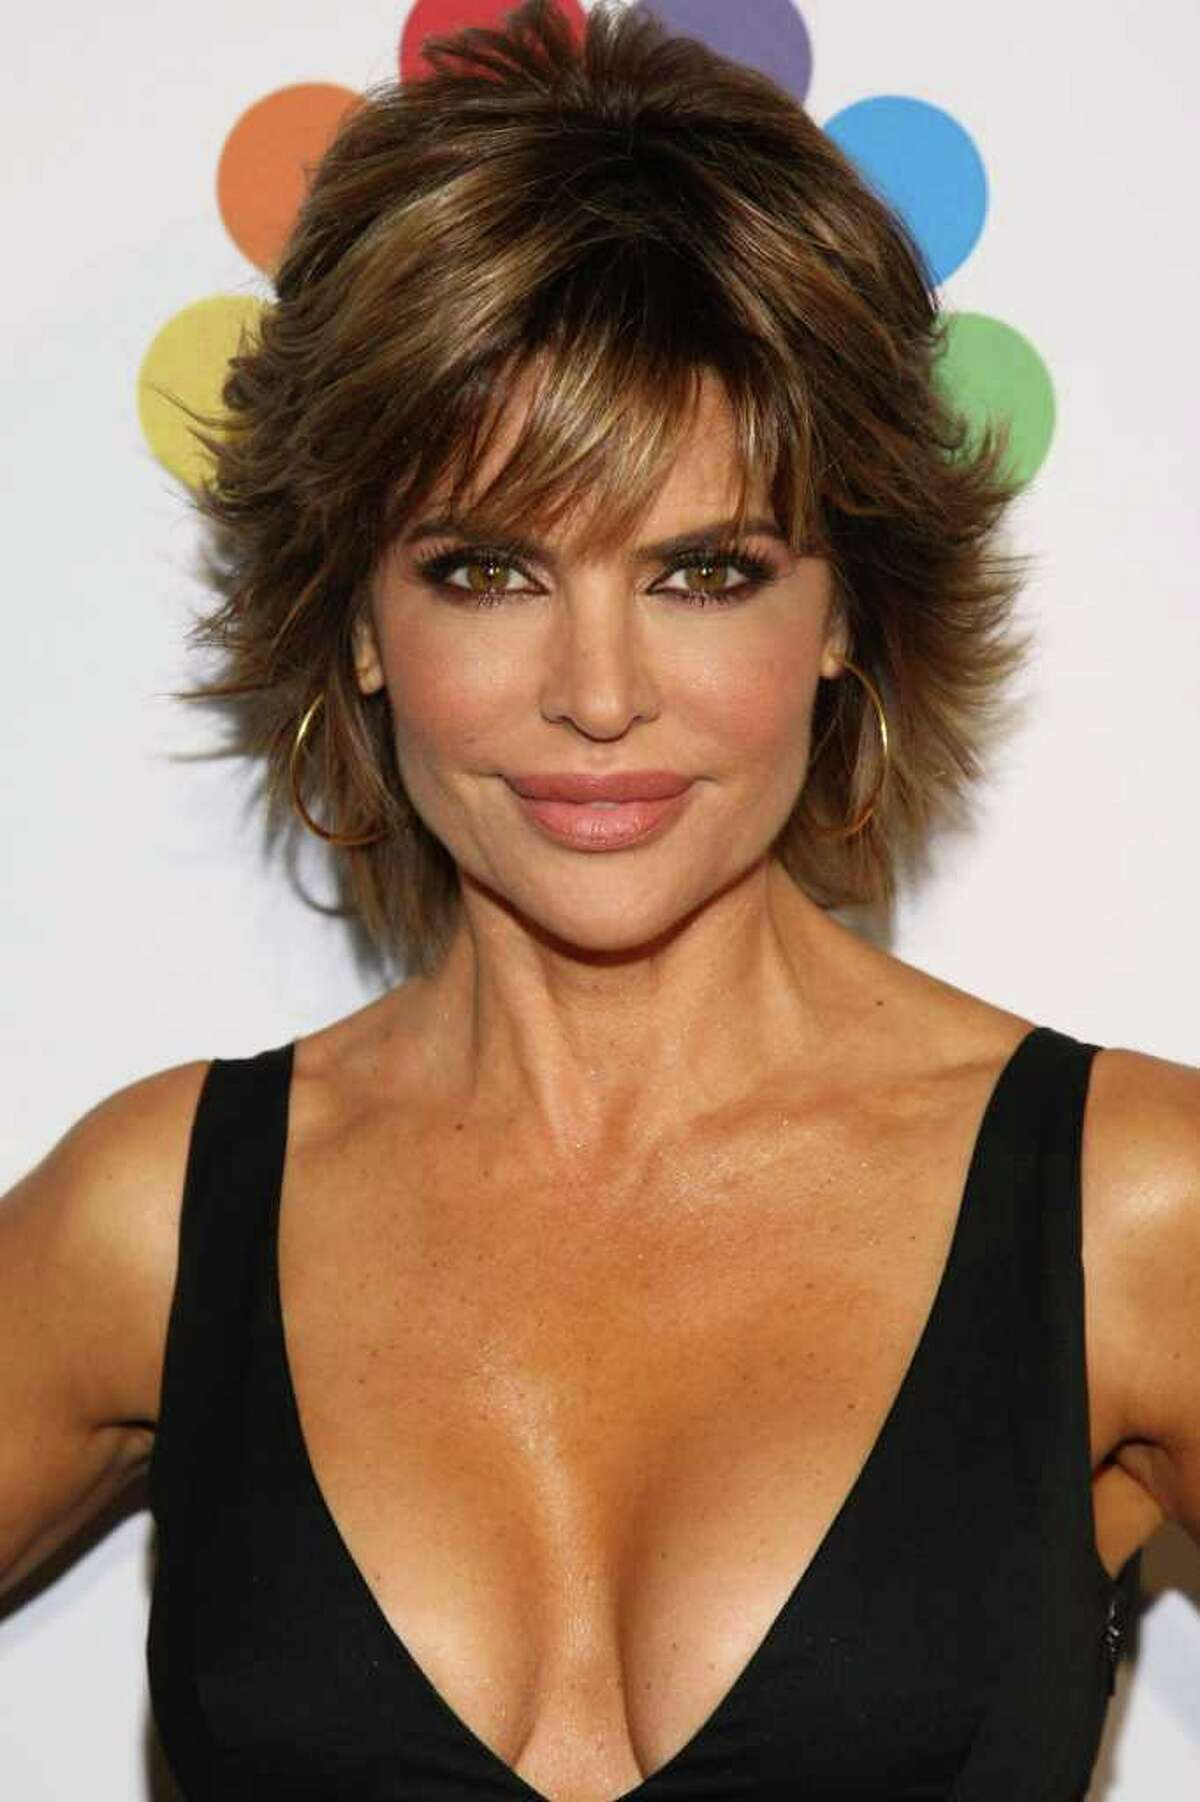 """Actress Lisa Rinna attends """"The Celebrity Apprentice"""" Season 4 Finale at Trump SoHo in New York City."""